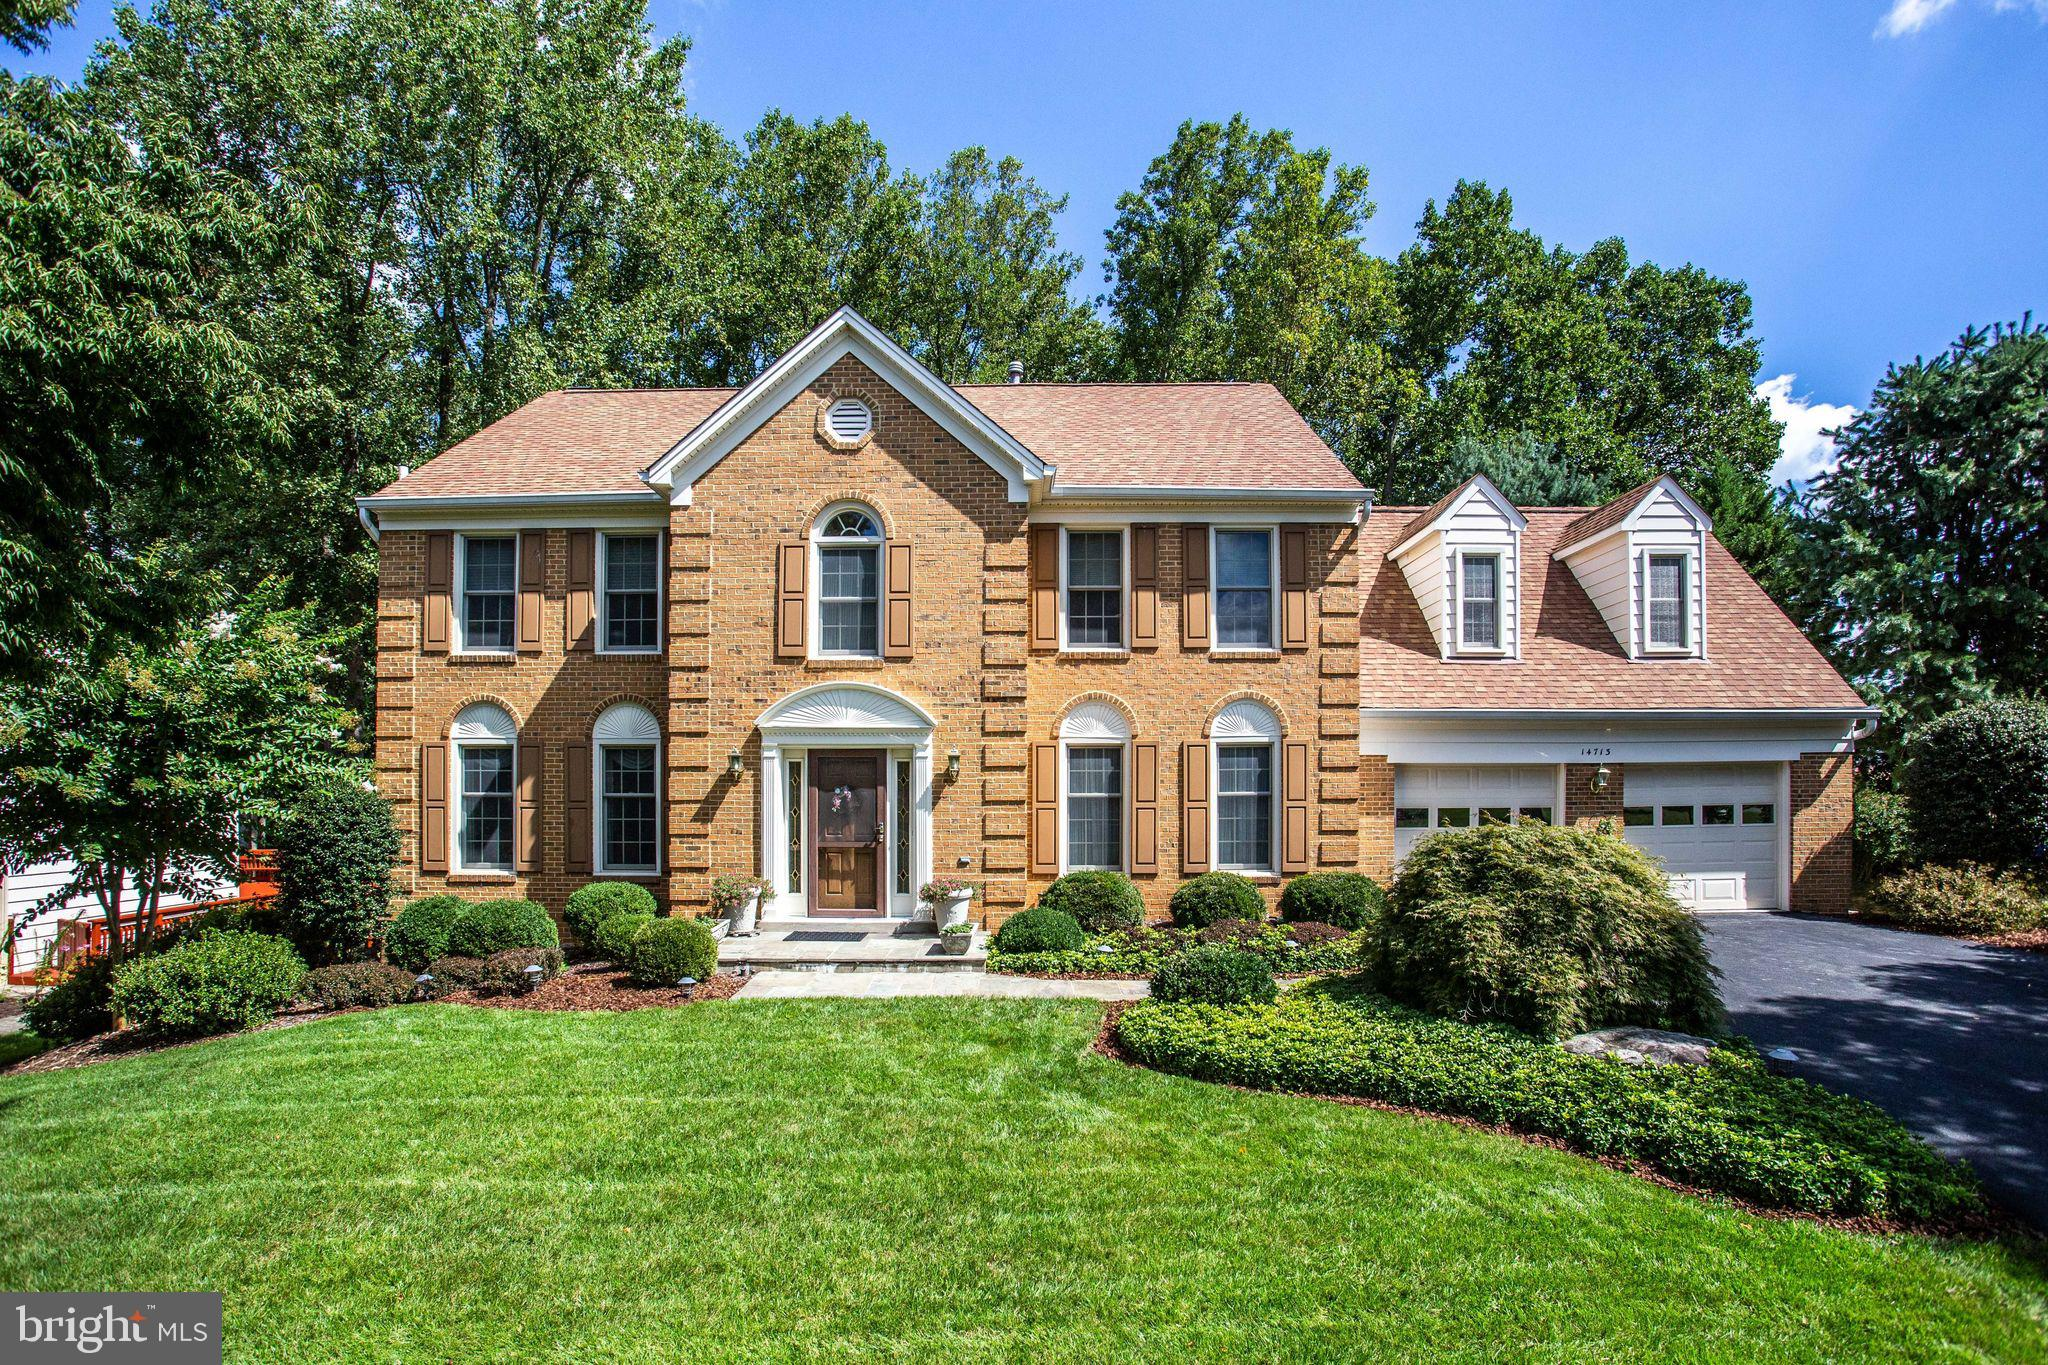 14713 JAYSTONE DRIVE, SILVER SPRING, MD 20905